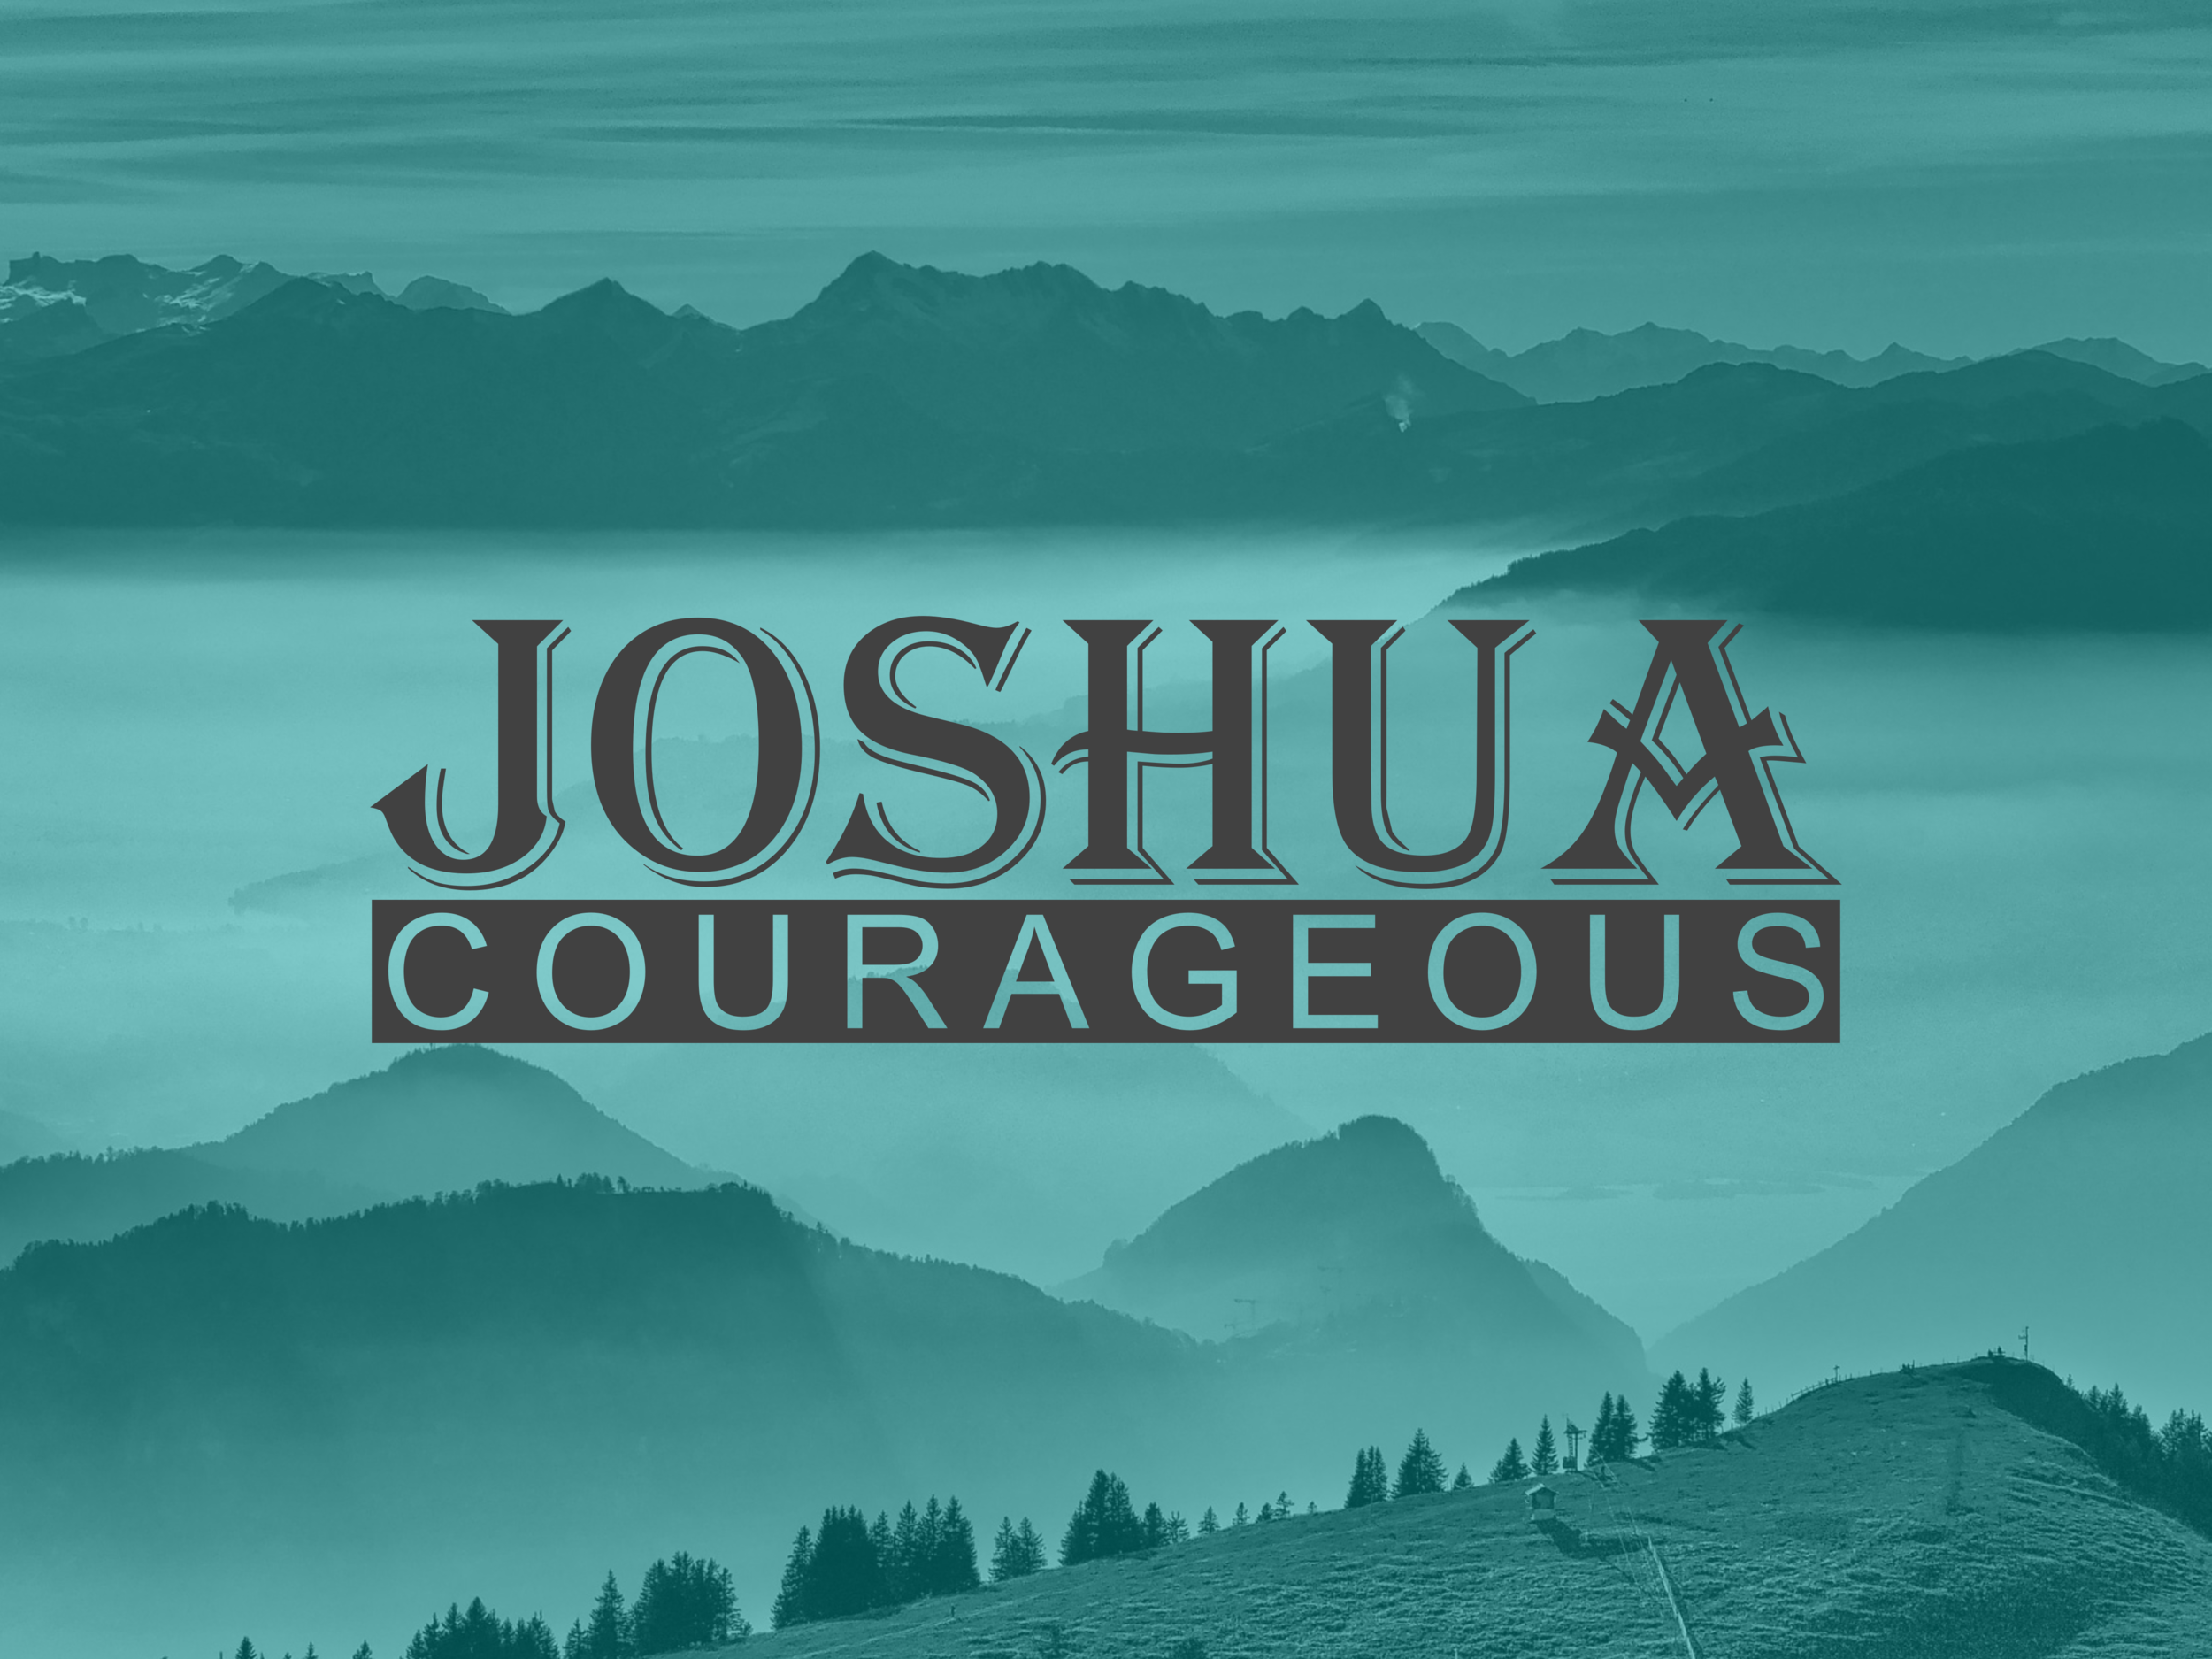 Courageous: May - July 2018